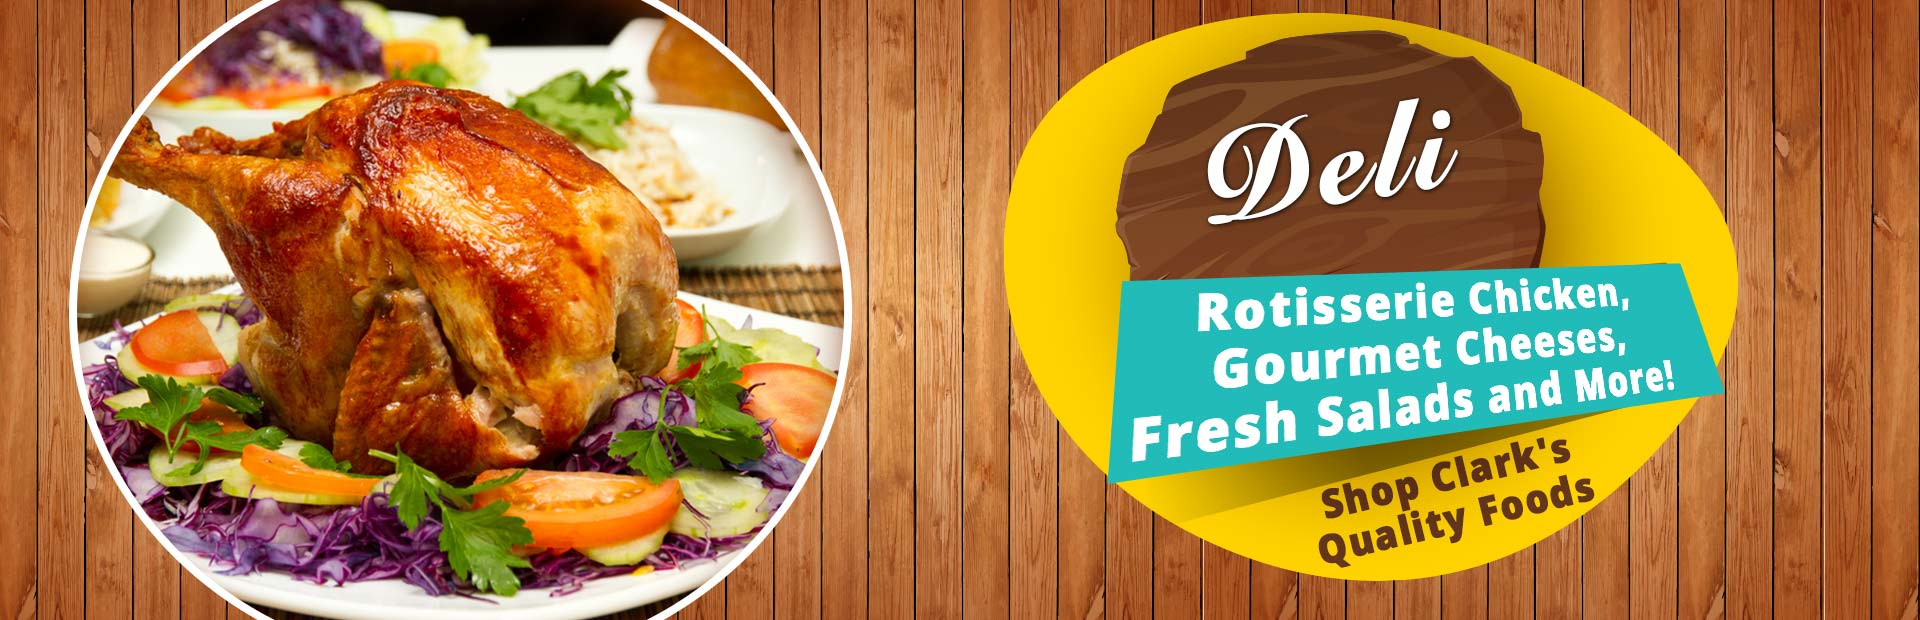 Rotisserie Chicken, Gourmet Cheeses, Fresh Salads, and More!